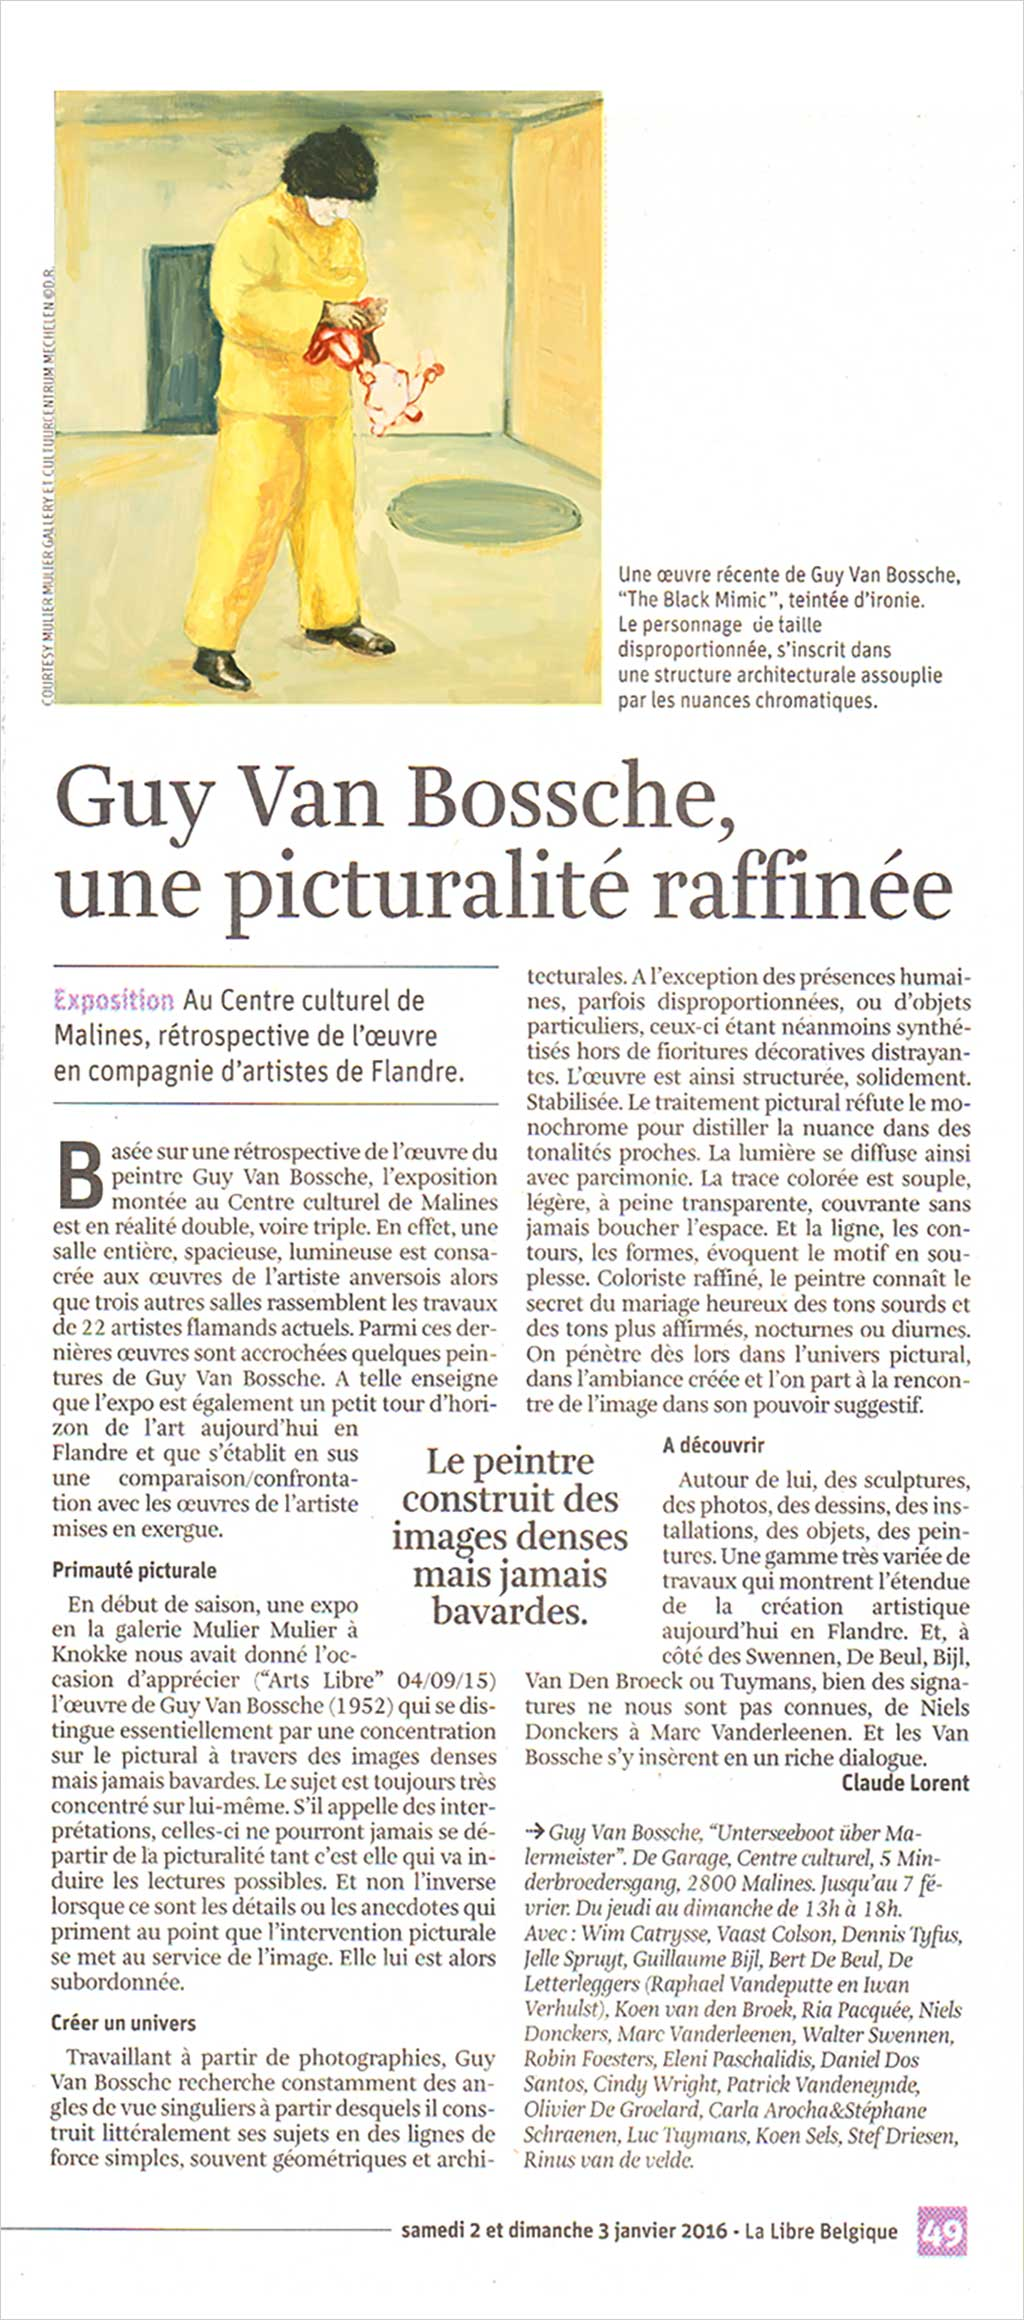 guy van bossche ccmechelen, retrospectieve over schilder Guy Van Bossche, with work of Luc Tuymans, Rinus Van de Velde, Marc Vanderleenen, Guillaume Bijl, Vaast Colson, Niels Donckers, Wim Catrysse, Walter Swennen